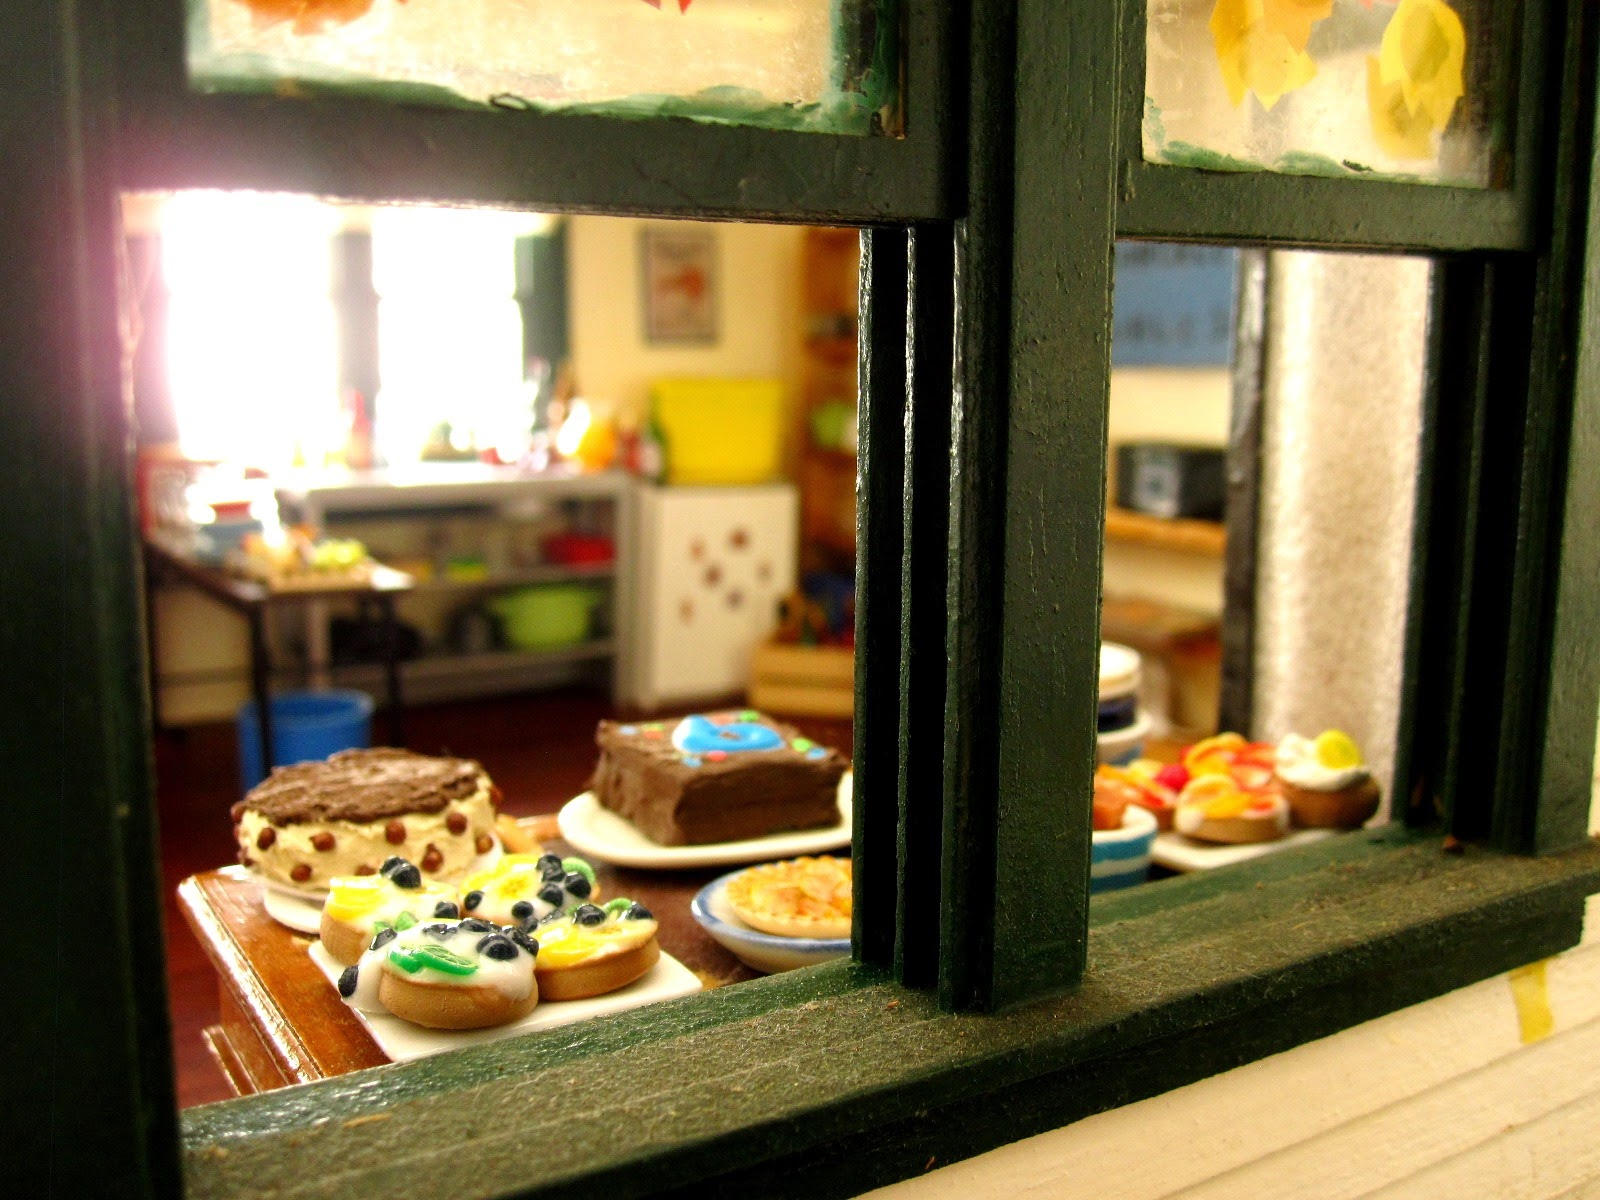 View from a miniature dolls' house veranda to inside where there is a table laden with cakes.